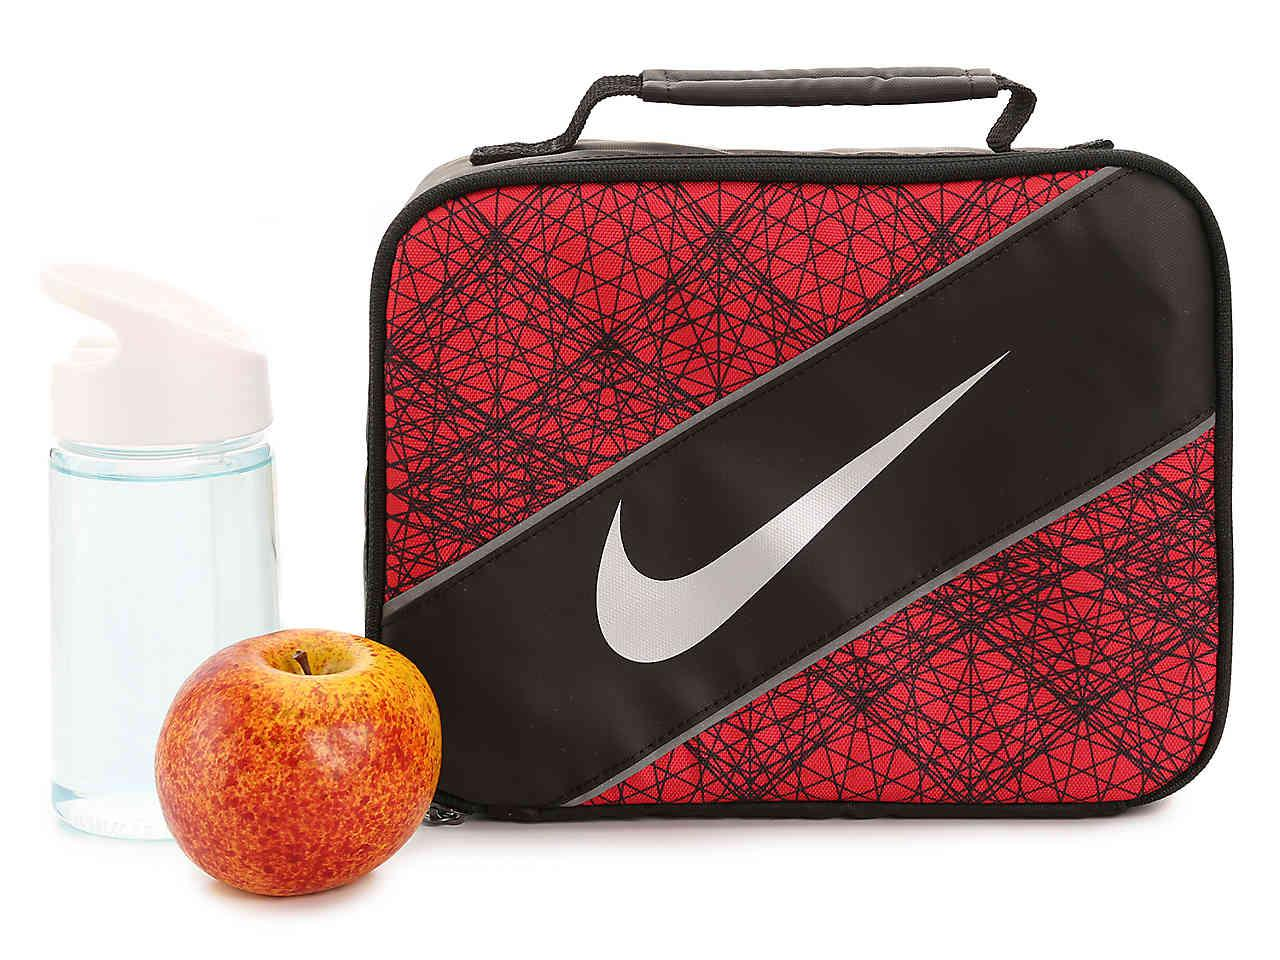 f3f0a8c6886c Lyst - Nike Reflect Lunch Box for Men